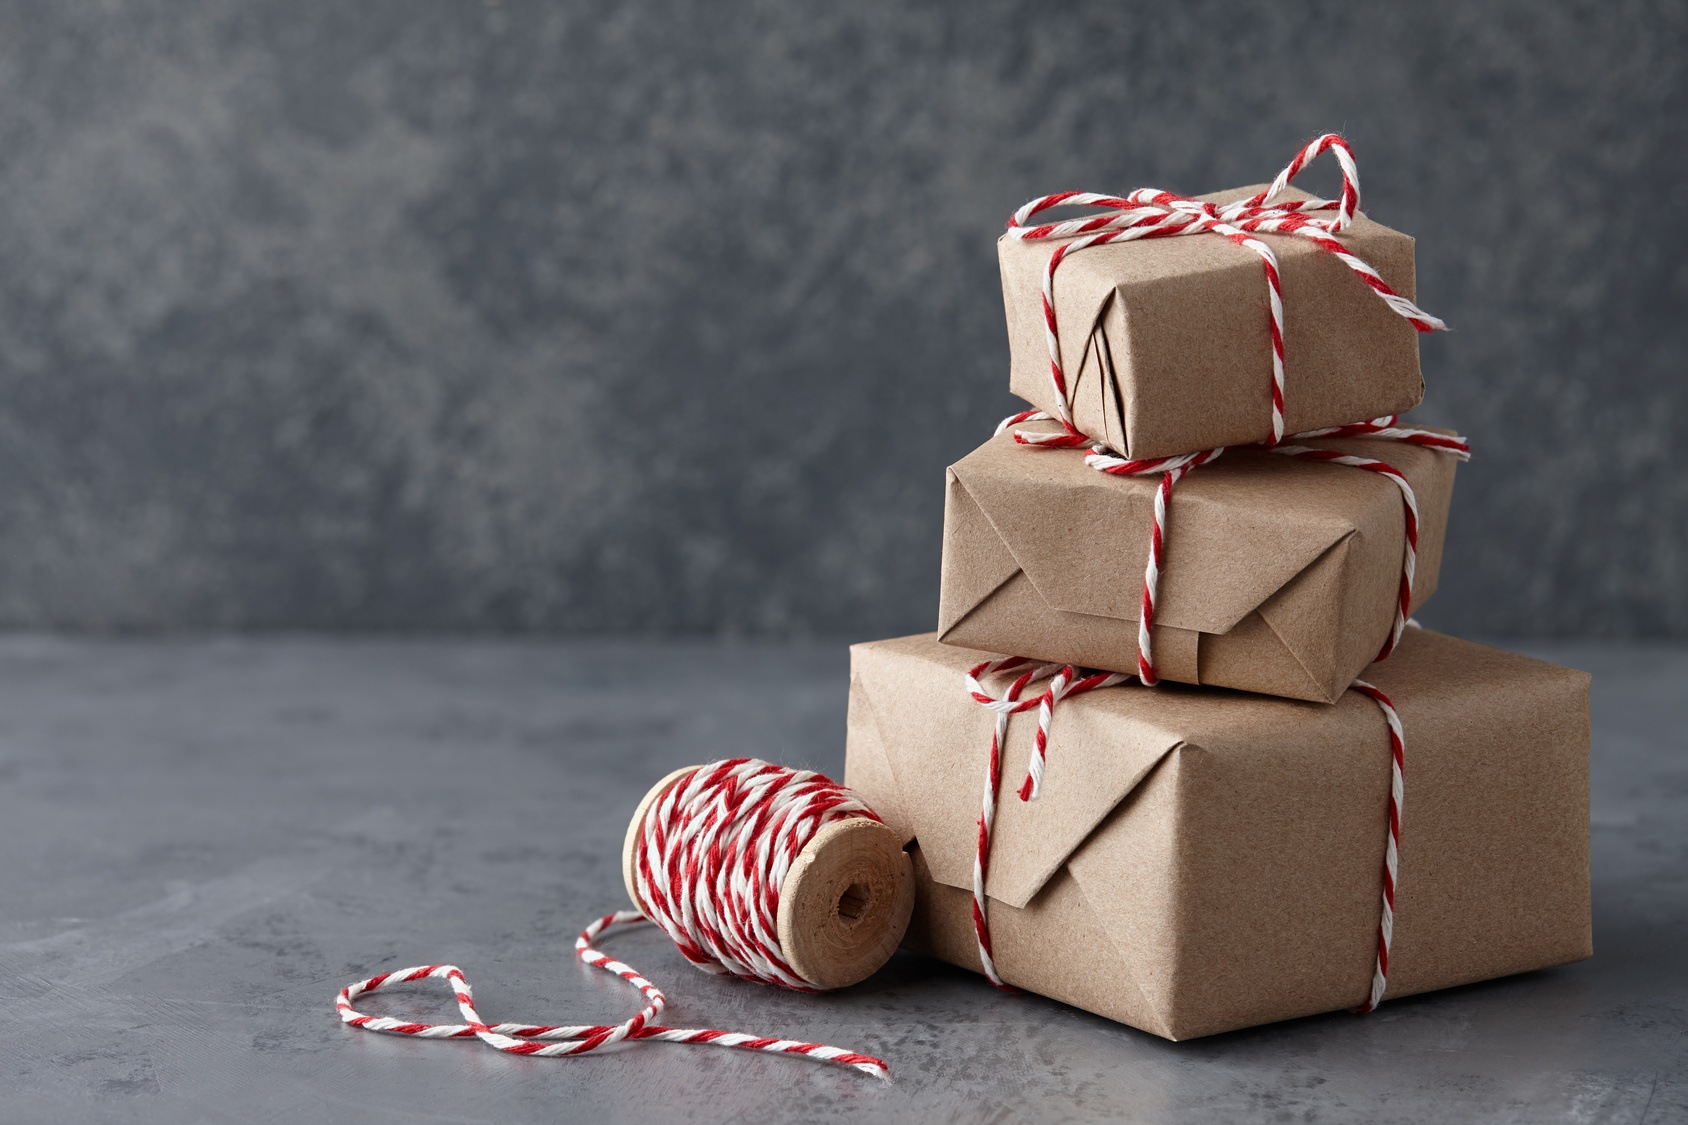 Christmas gift or present boxes wrapped in kraft paper with striped baker's twine string on textured stone background, copy space